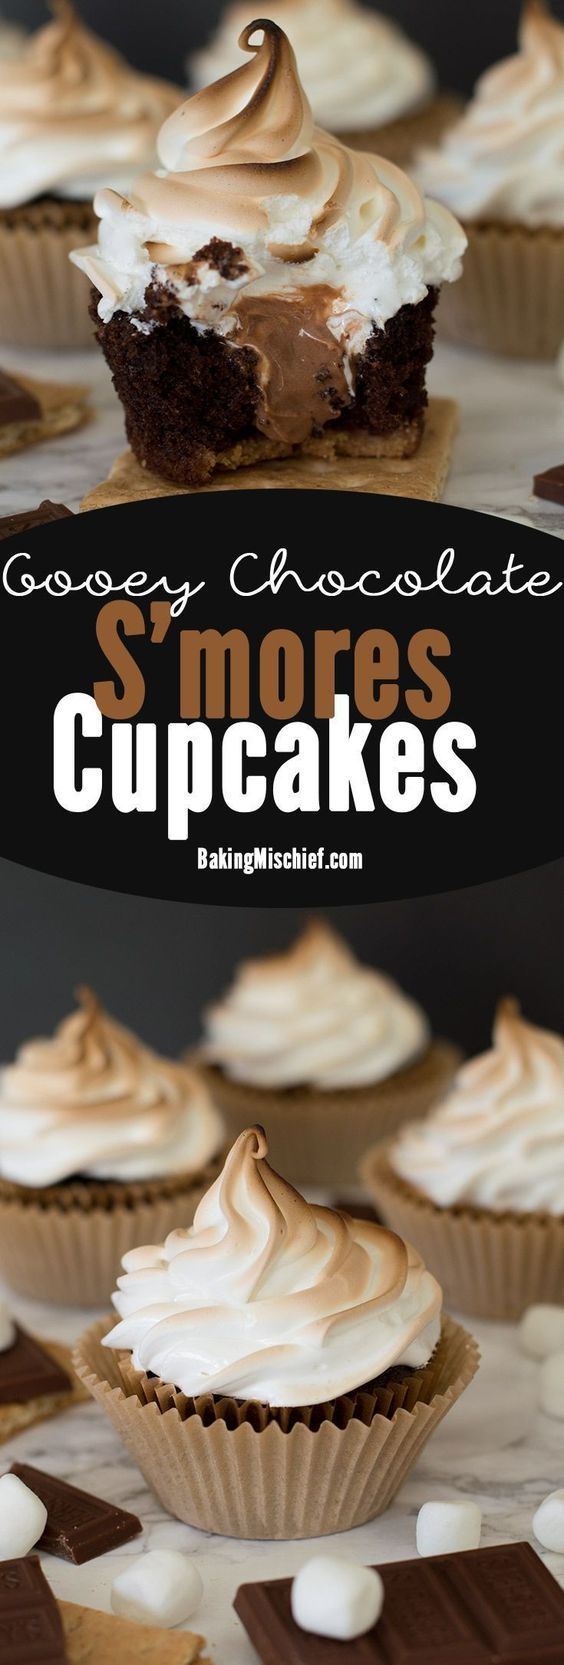 Gooey Chocolate S'mores Cupcakes